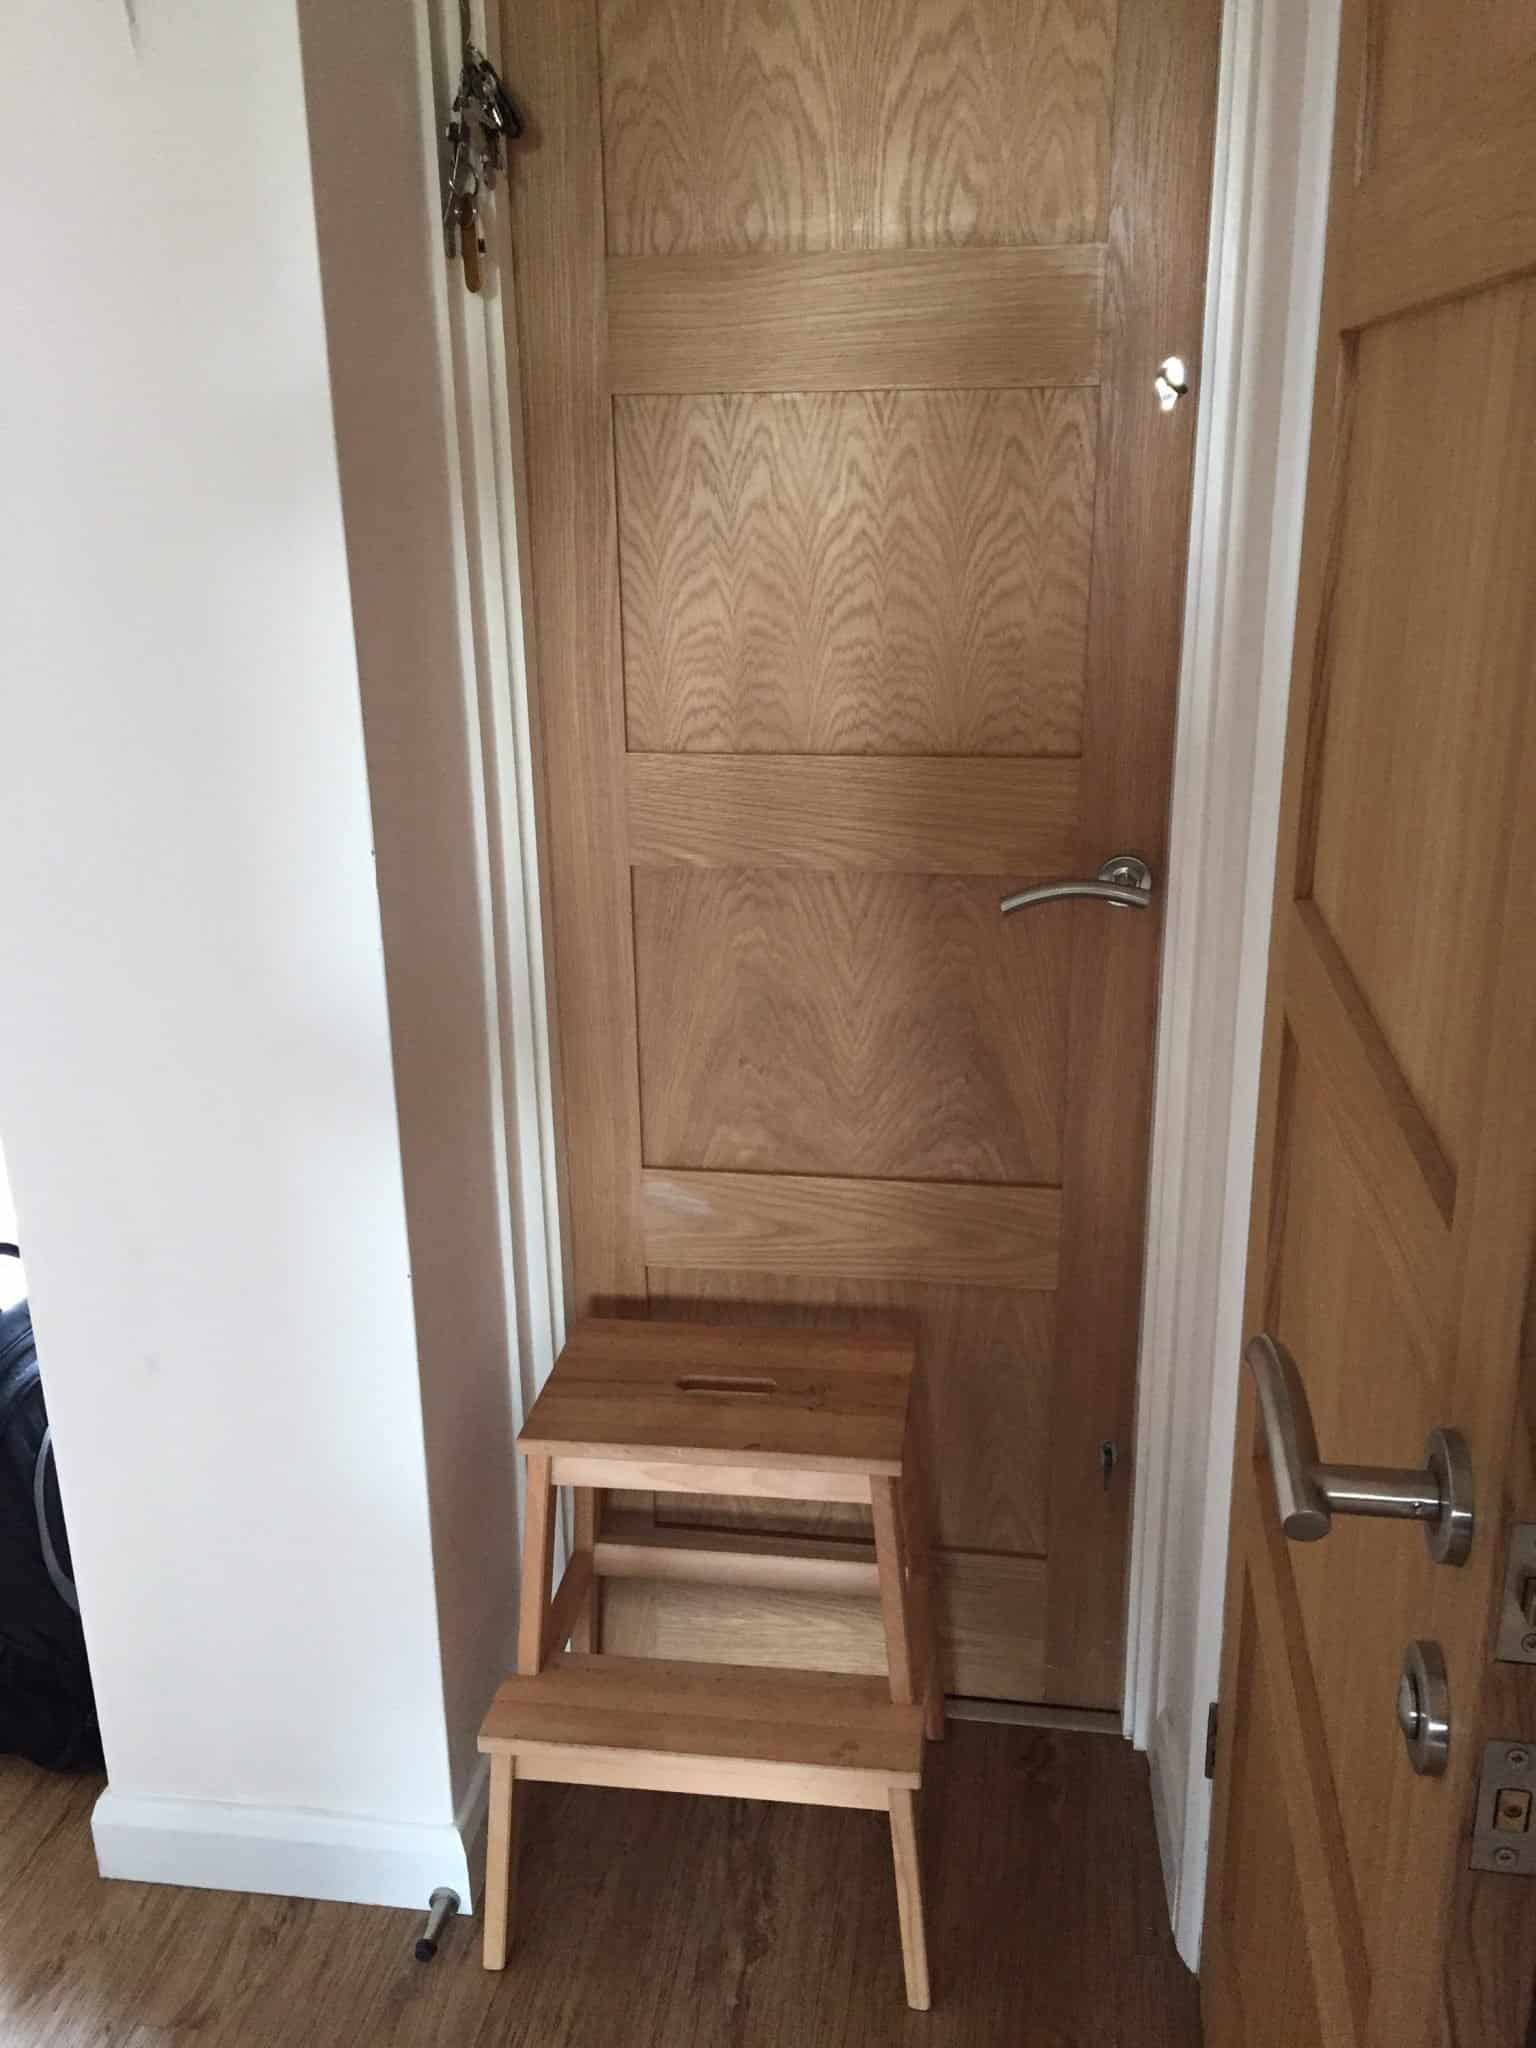 Utility room door with step stool